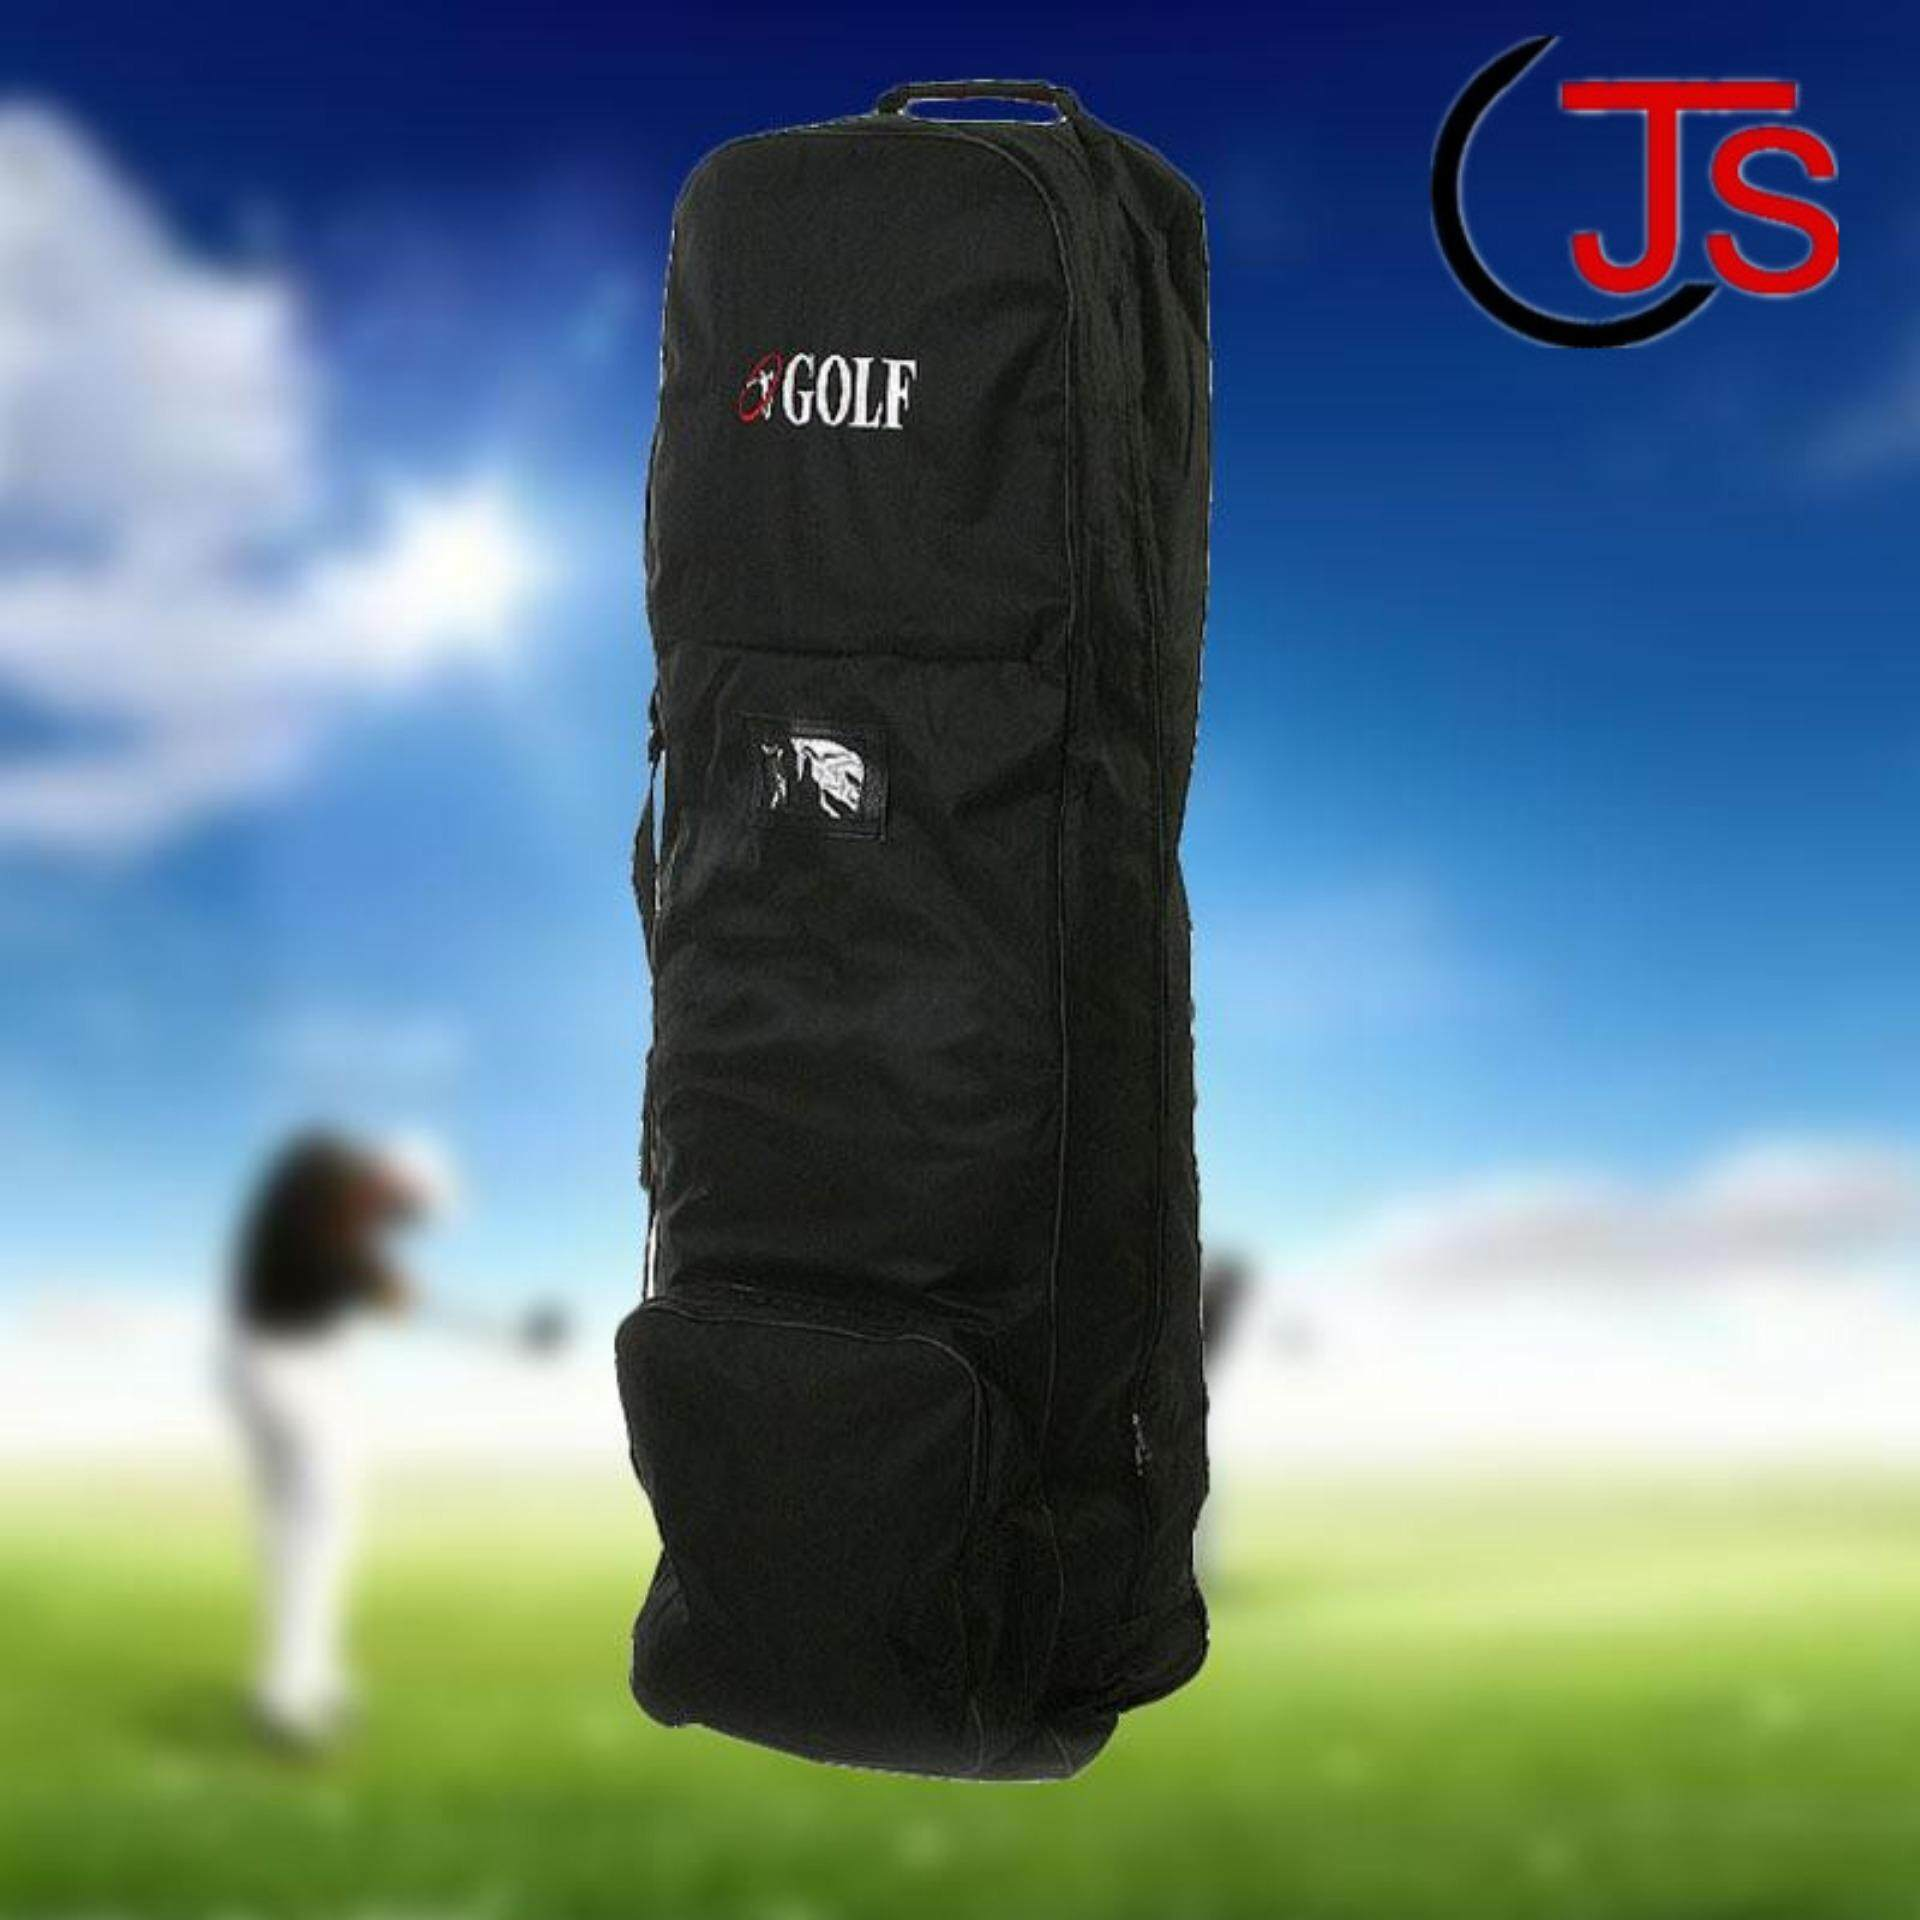 Flight Travel Golf Bag Protective Carrying Coverall Cases Carrier With Wheels By Tsujiu Store.